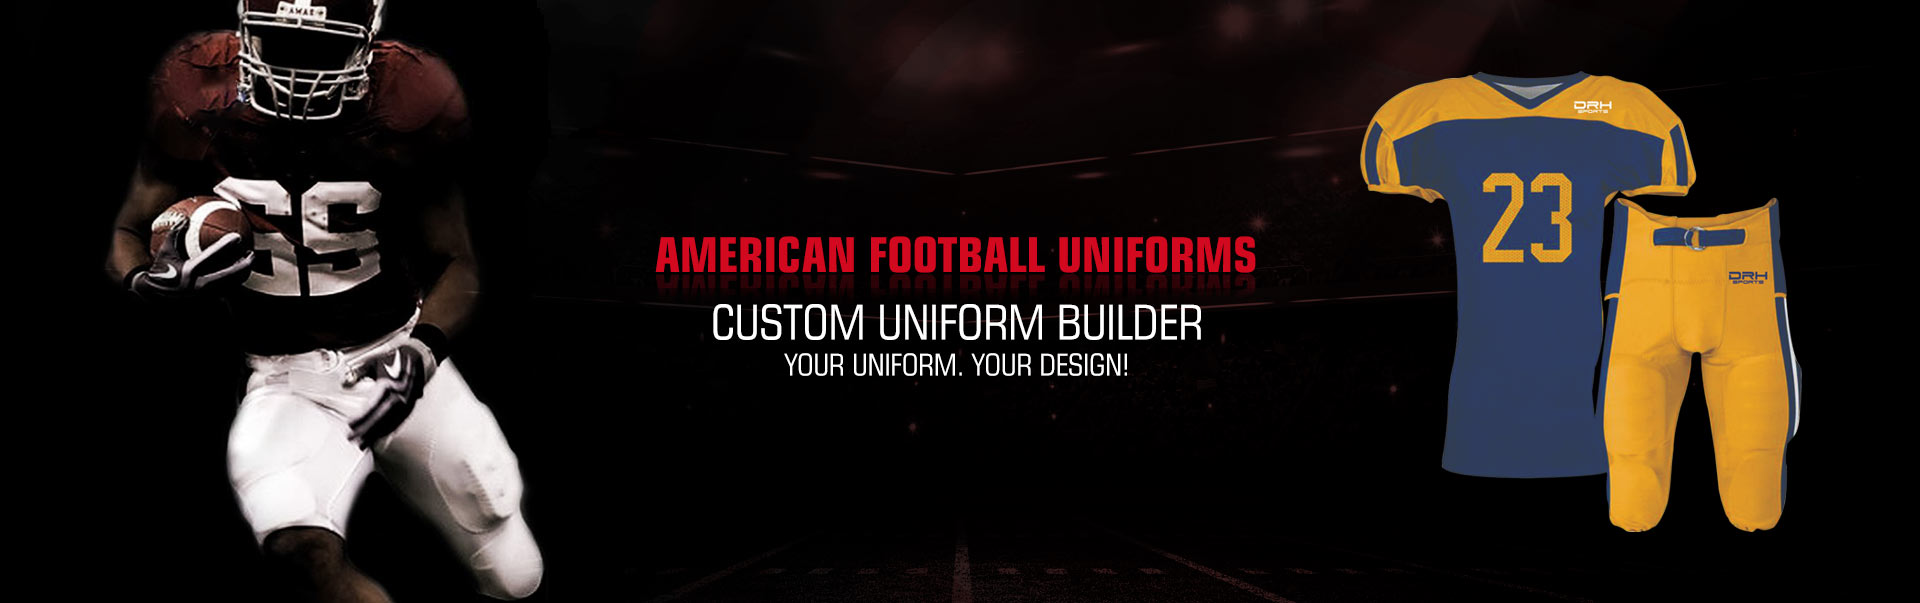 American Football Uniform Wholesaler, Suppliers in Iraq